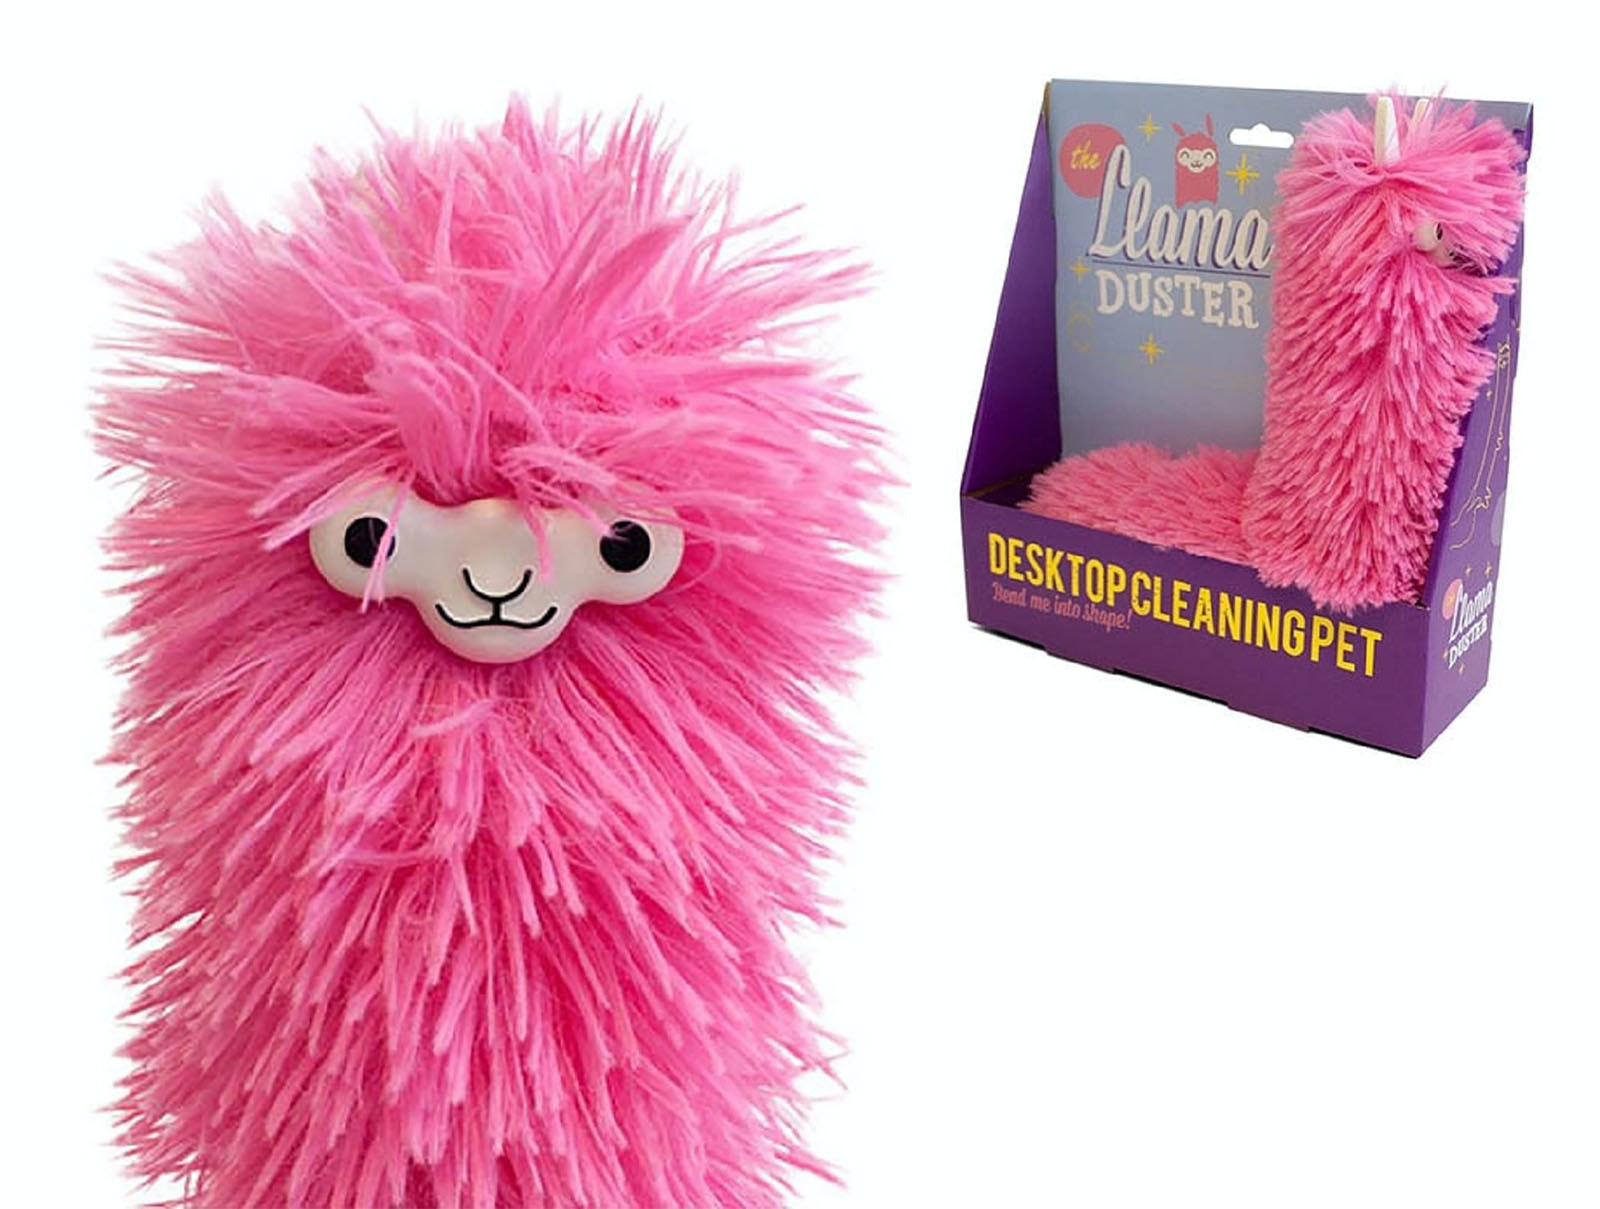 A fuzzy llama that keeps your desk nice and clean